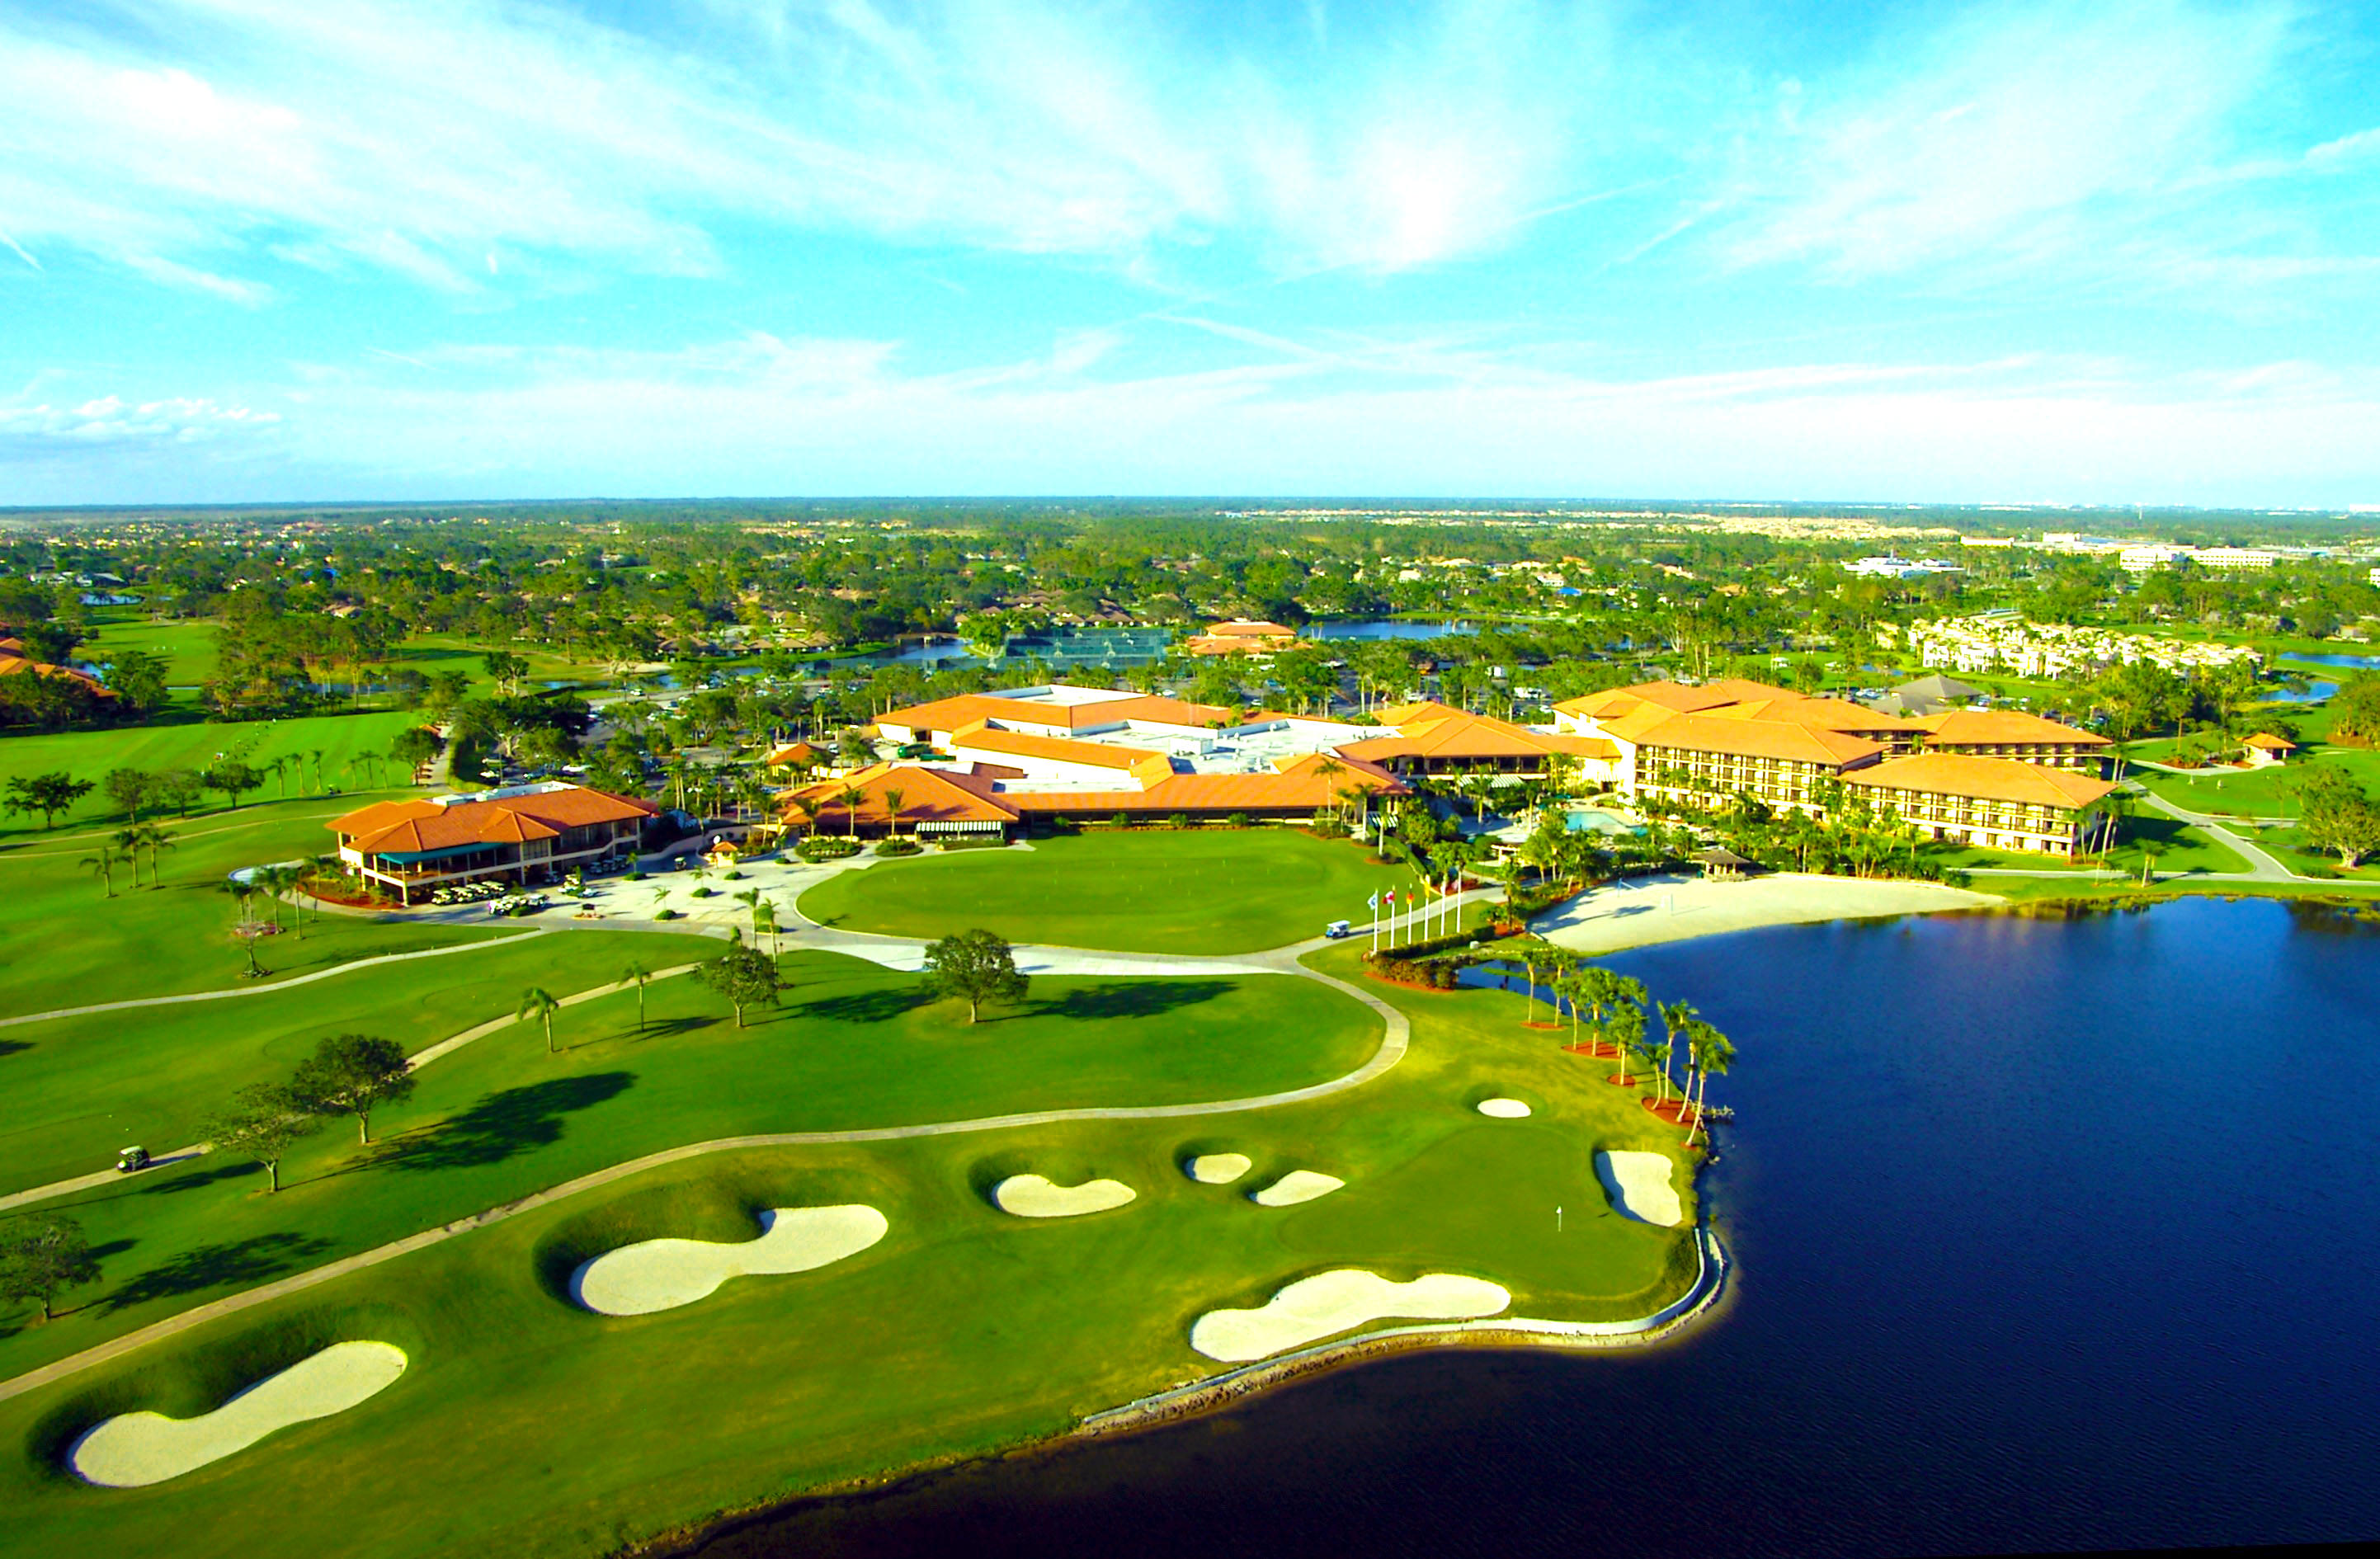 American Golf Tours Golf Vacations By Pga Pros Since 1989